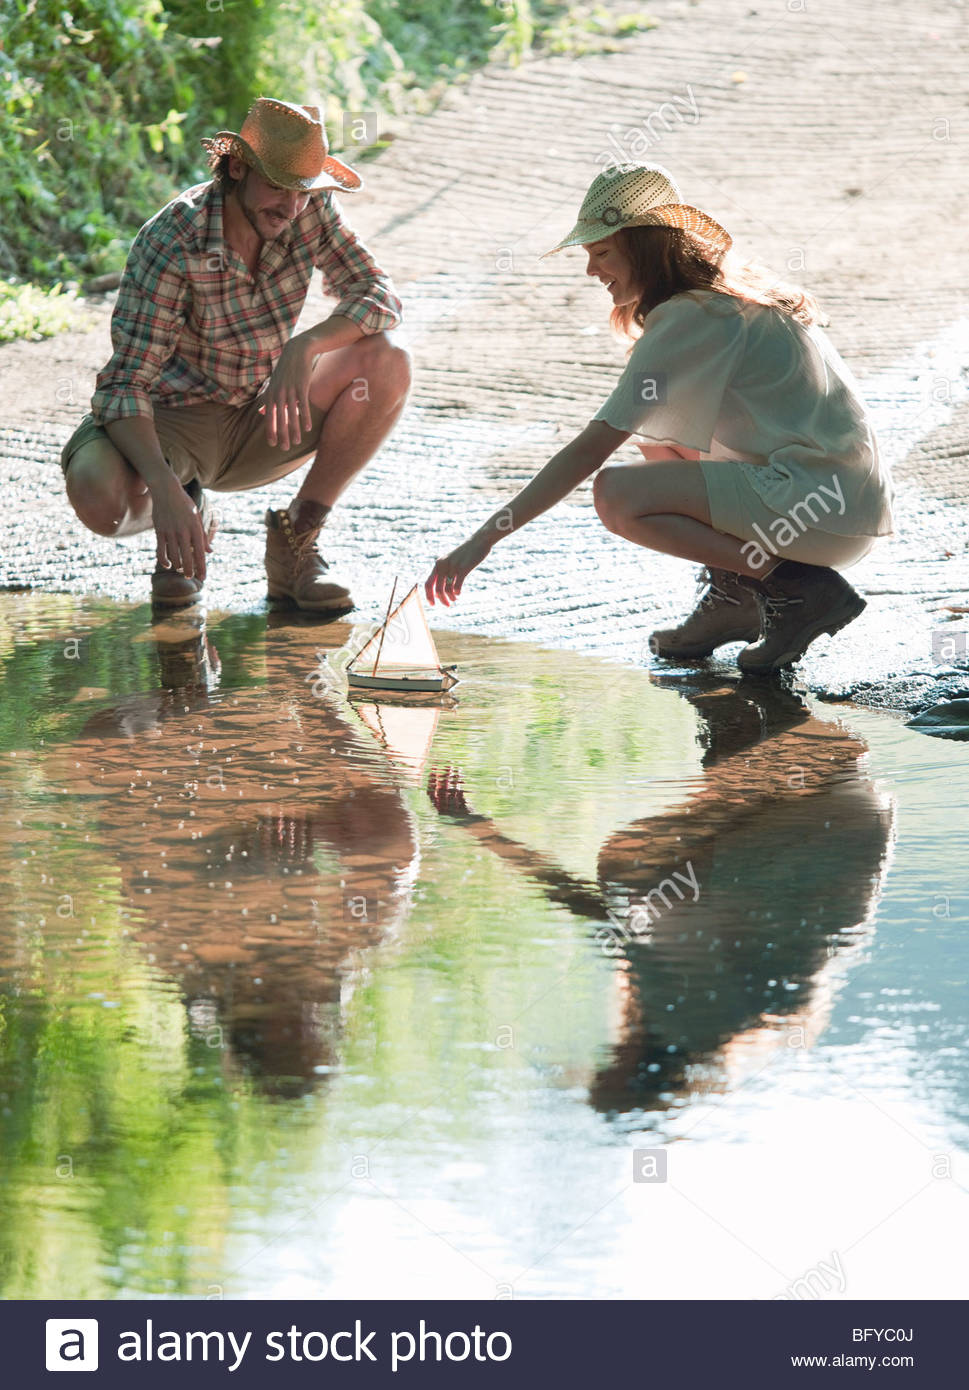 Man and woman with model boat on lake - Stock Image